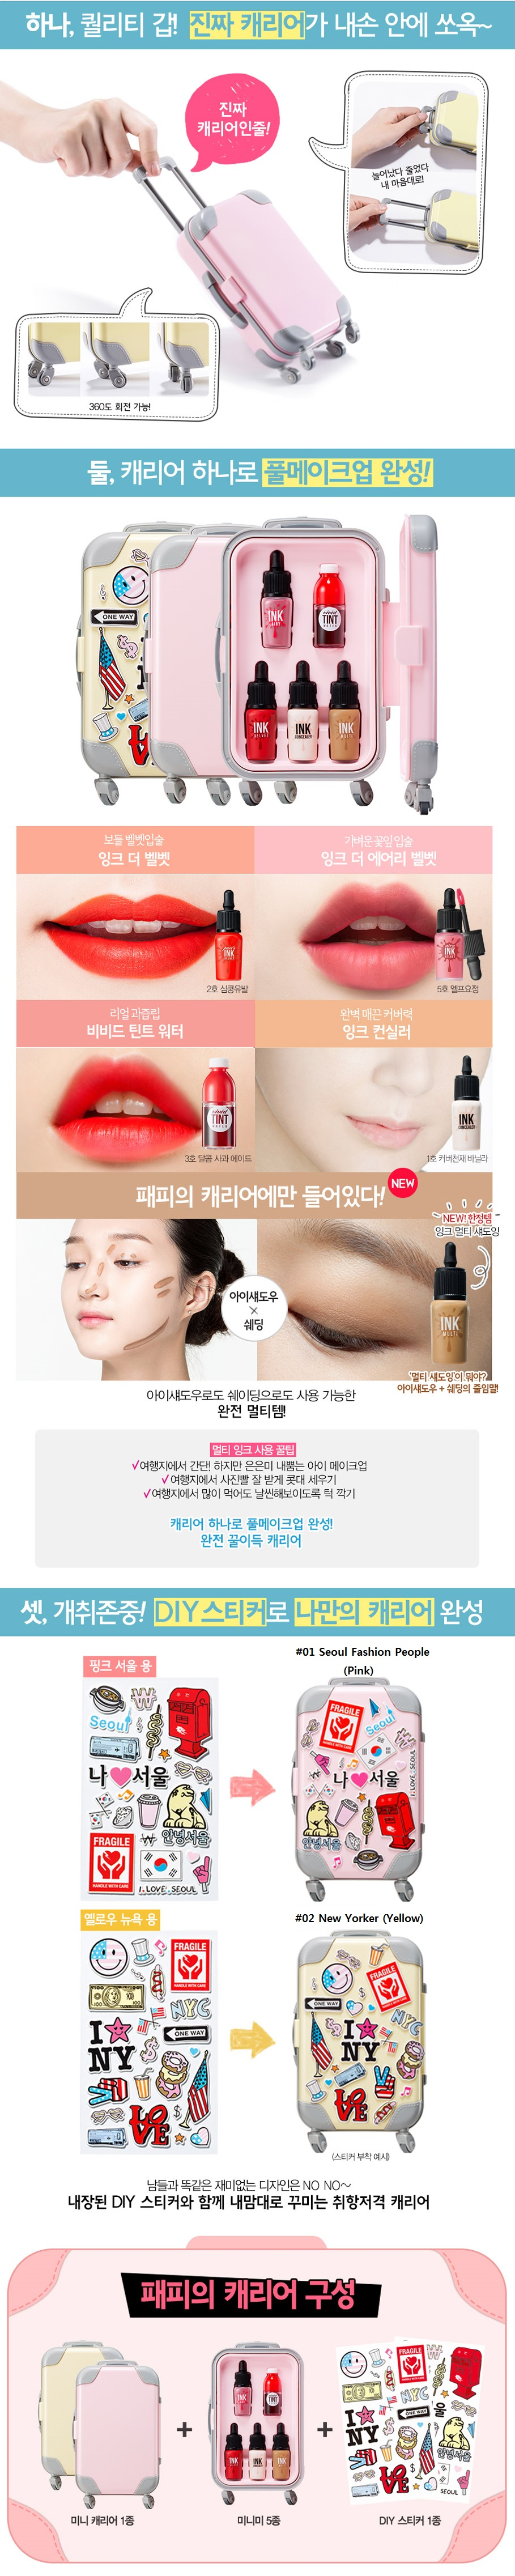 peripera mini pink carrier에 대한 이미지 검색결과